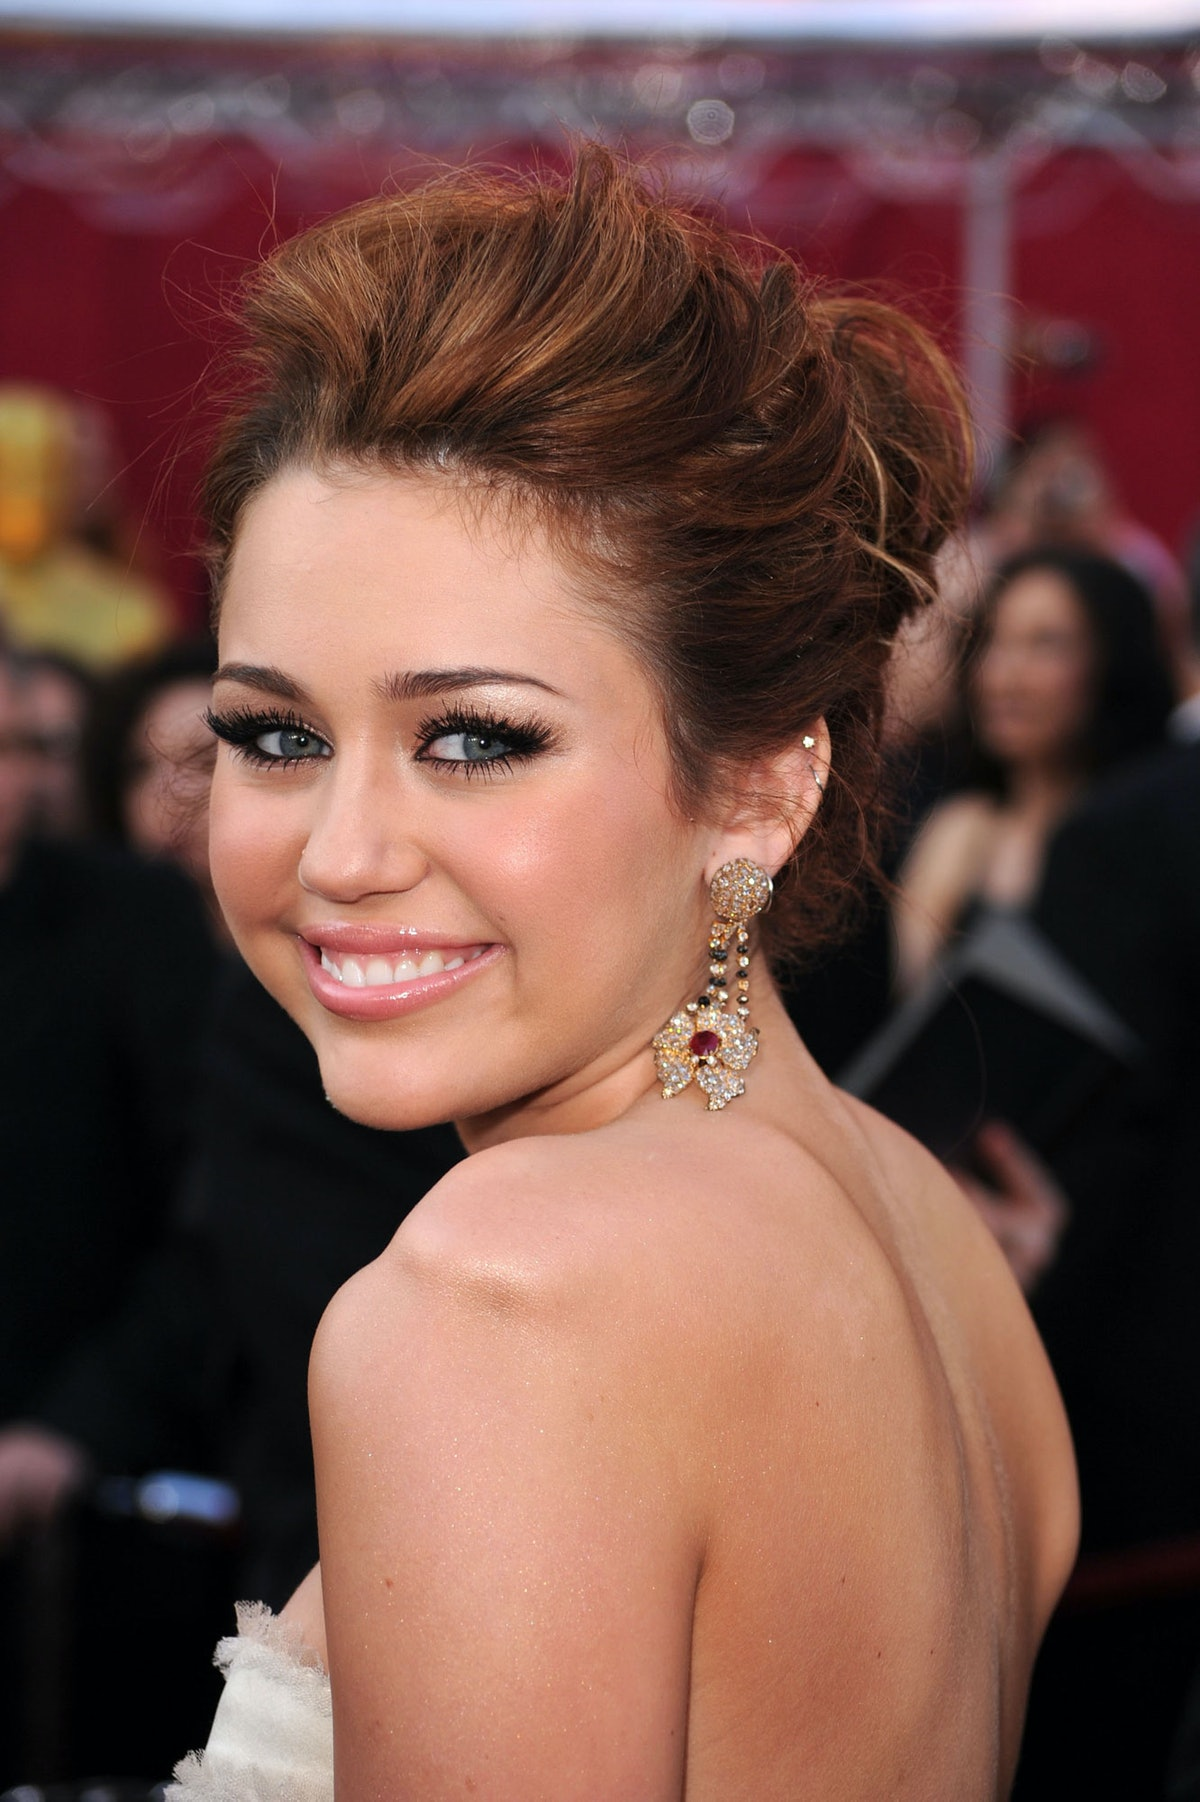 If there's one thing Cyrus knows how to do, it's clean up nice for the red carpet. Case in point: th...